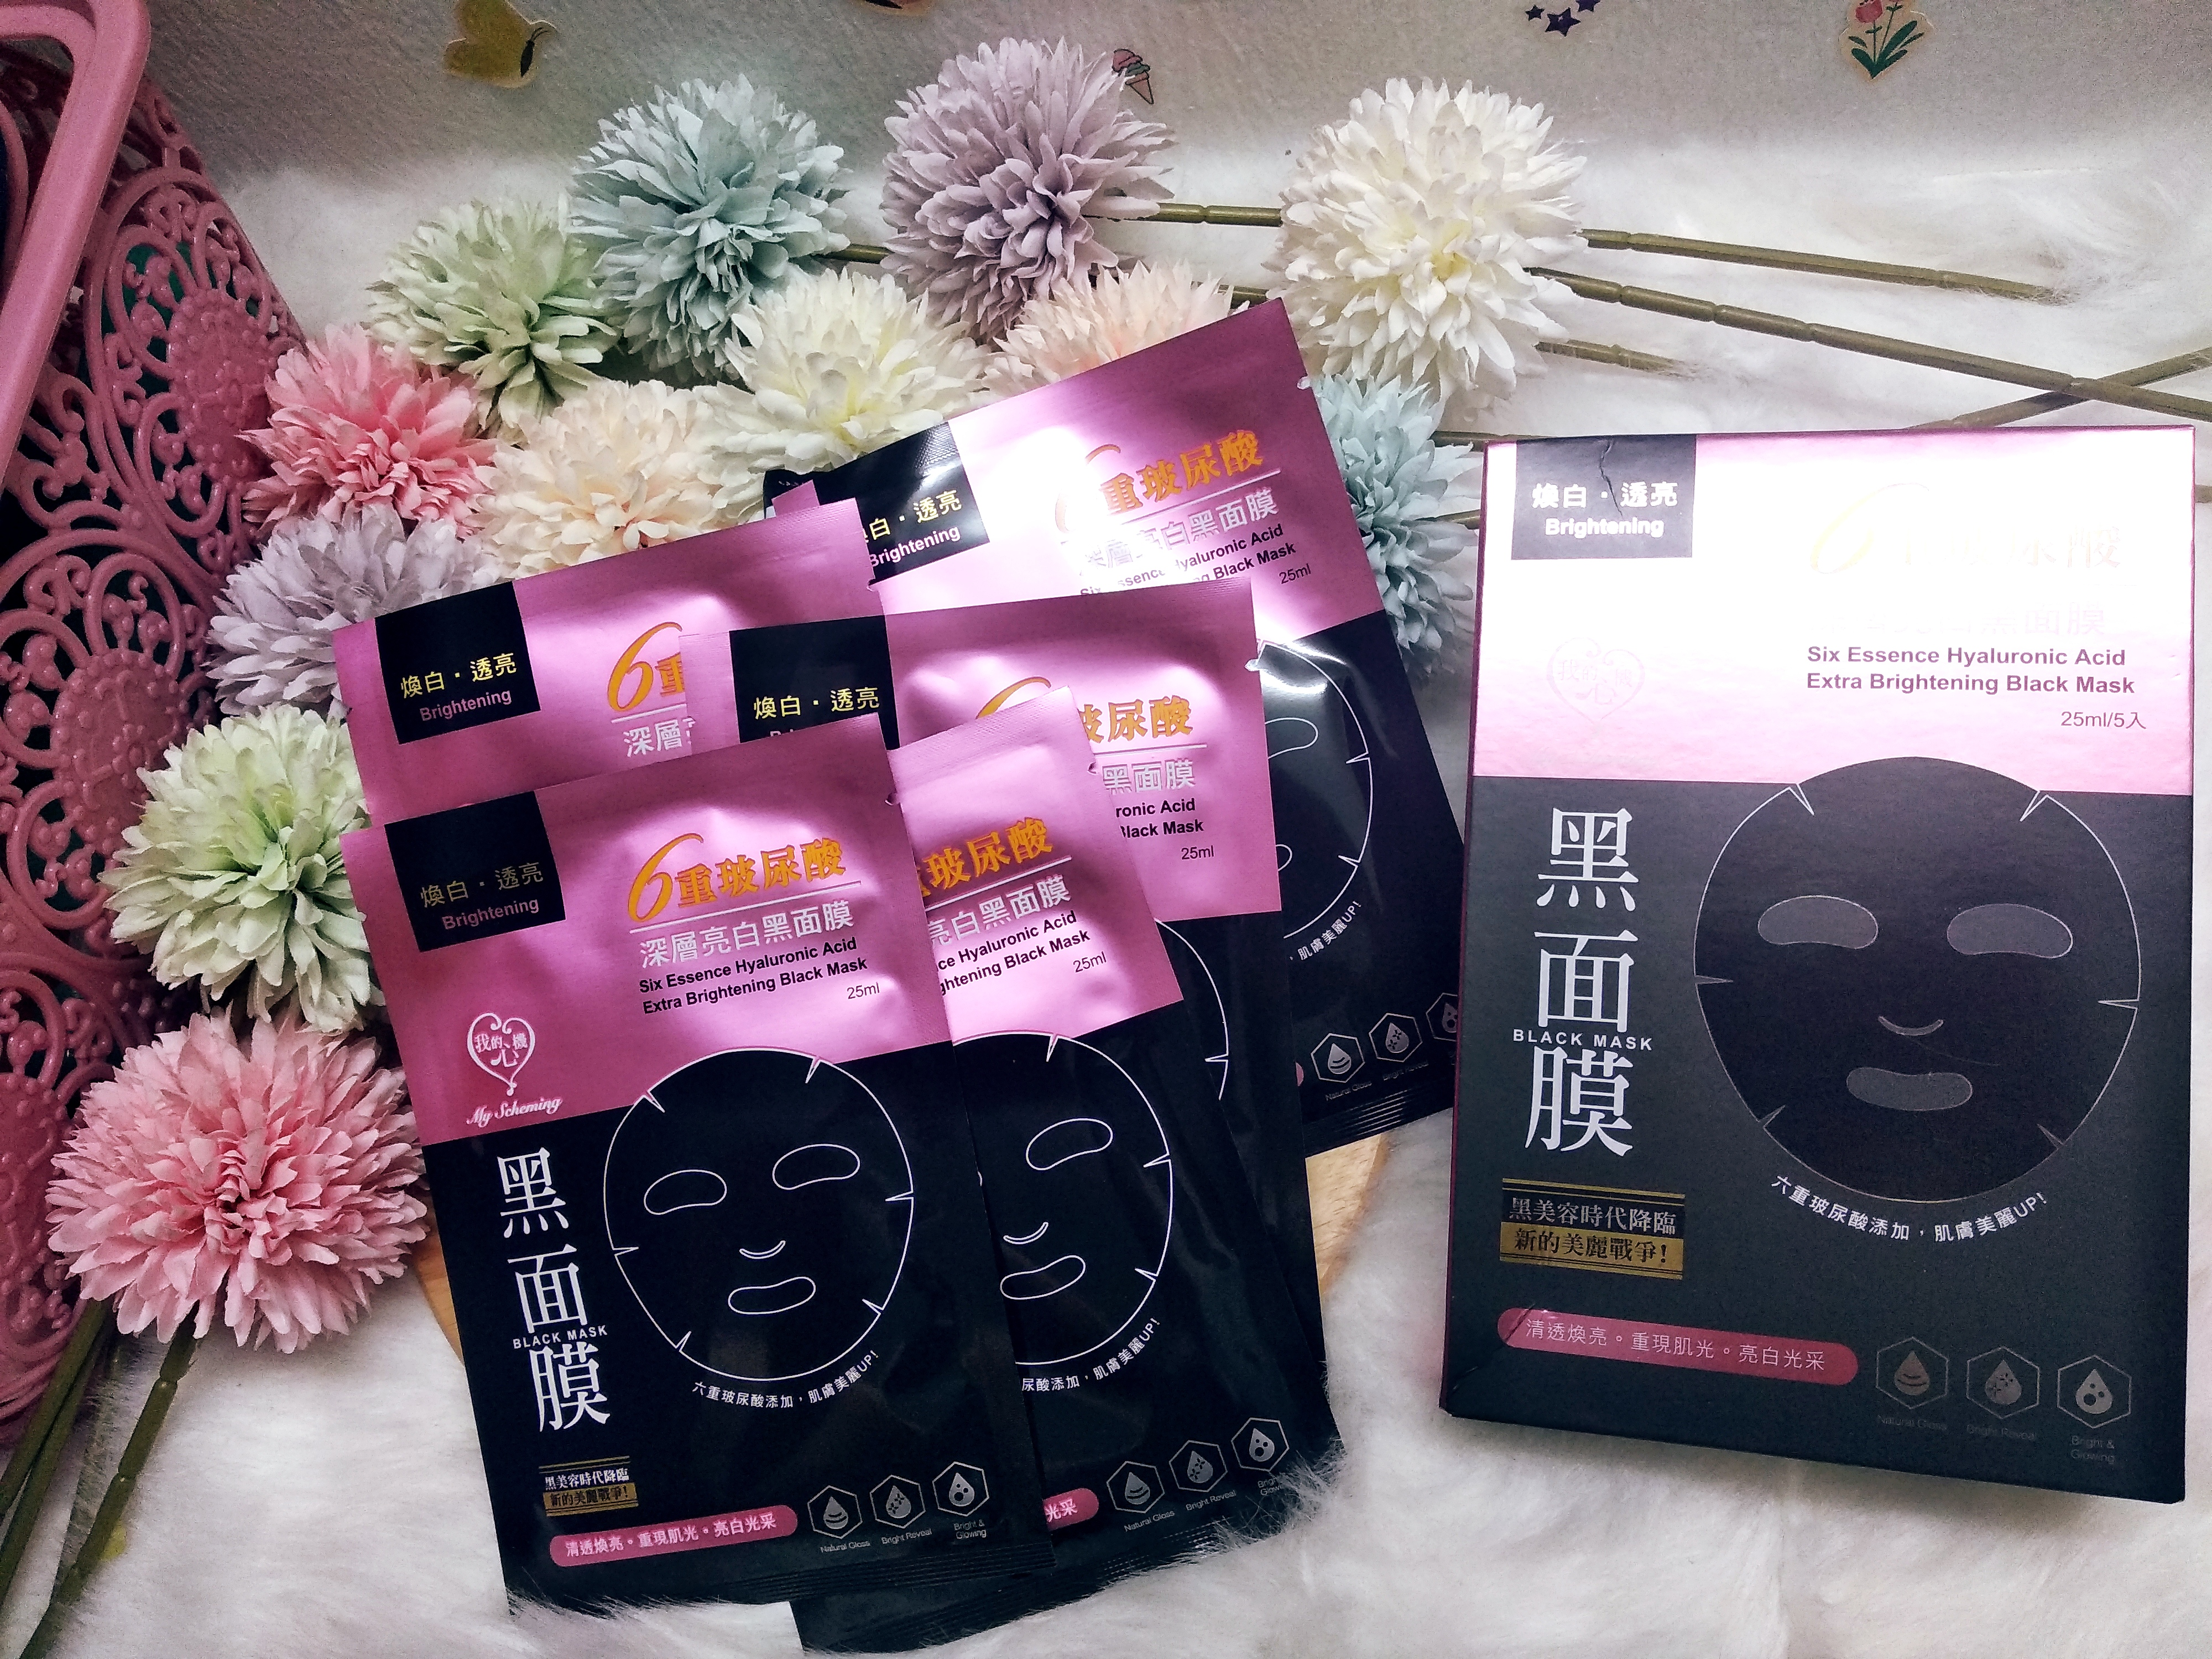 REVIEW | My Scheming Six Essence Hyaluronic Acid Black Mask #Extra Brightening